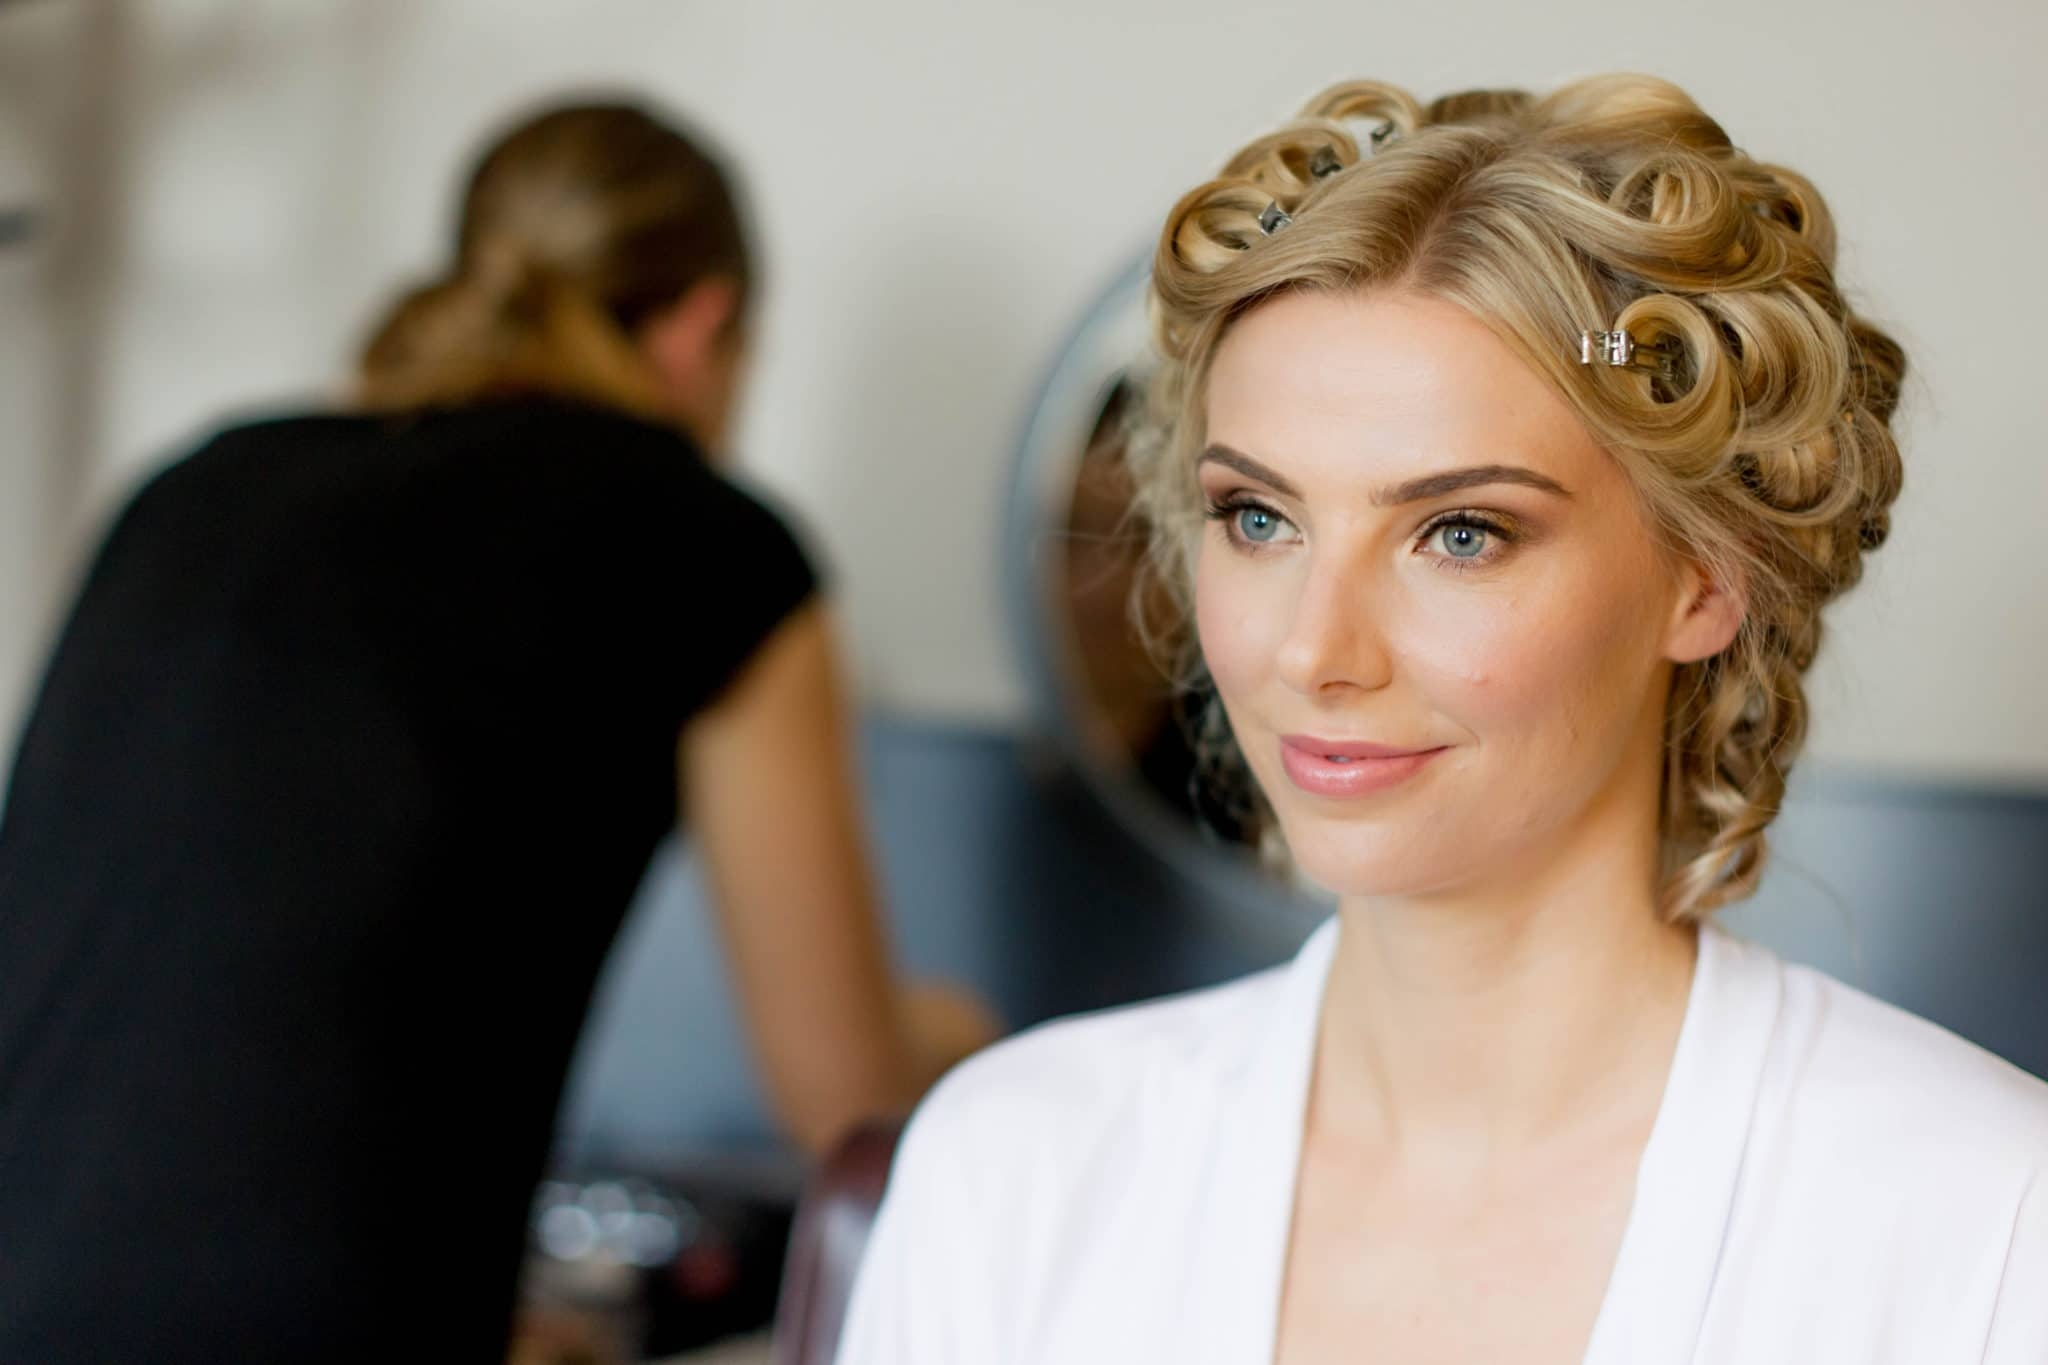 portrait of bride with hair in rollers and natural makeup